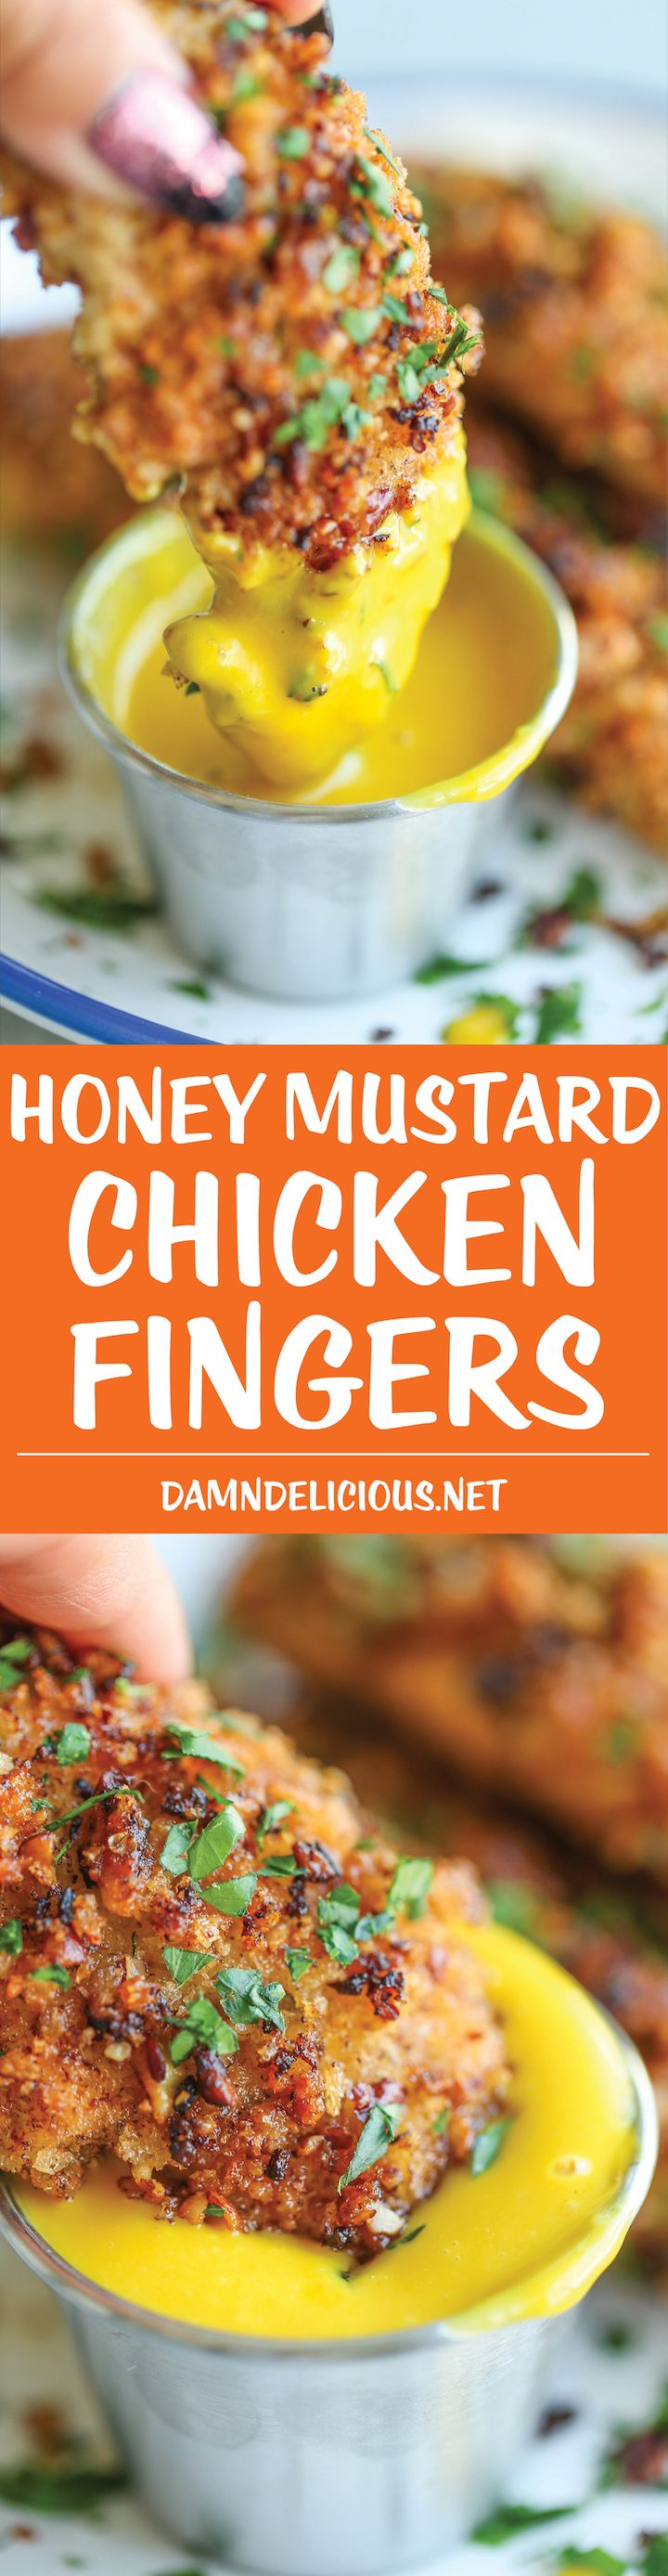 Honey Mustard Chicken Fingers - Heart-healthy chicken tenders completely baked in an AMAZING mustard sauce and coated with a nutty crunchy pecan crust!